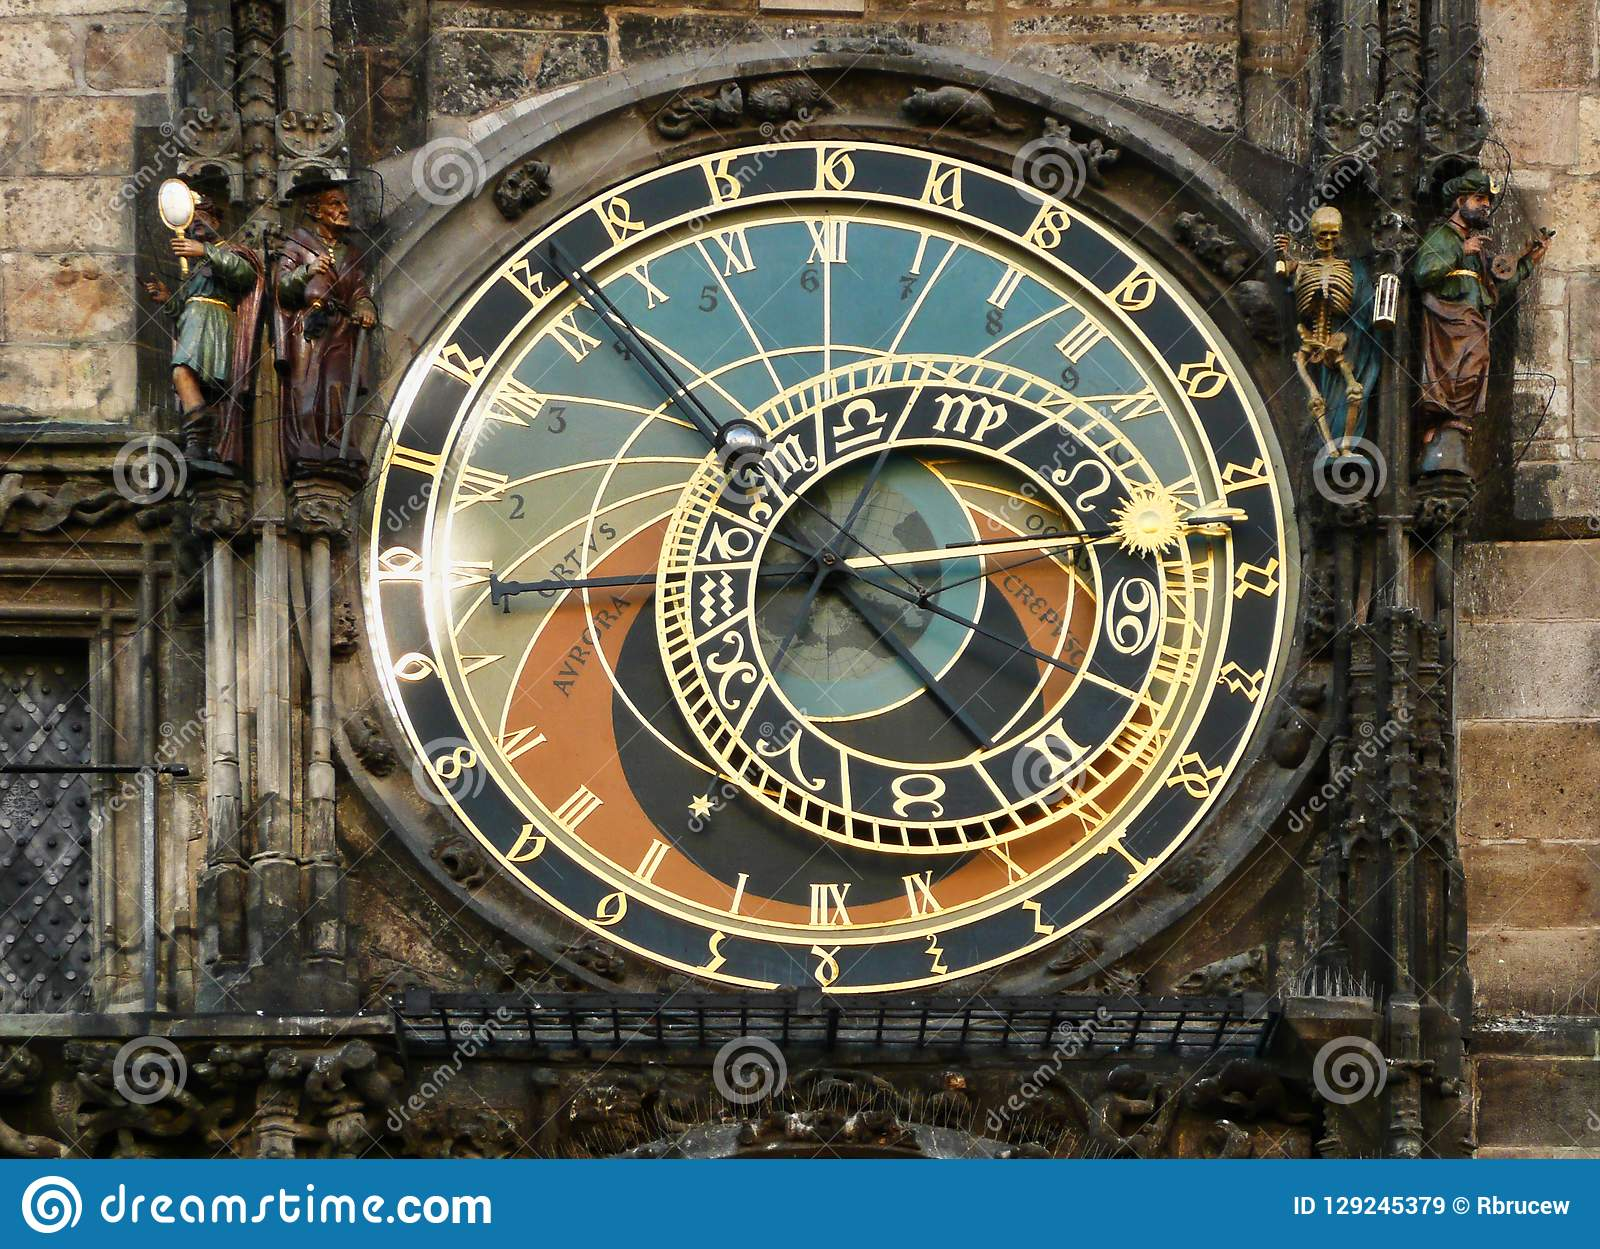 Astrological Clock Tower, Old Tower Square, Prague, Czech Republic